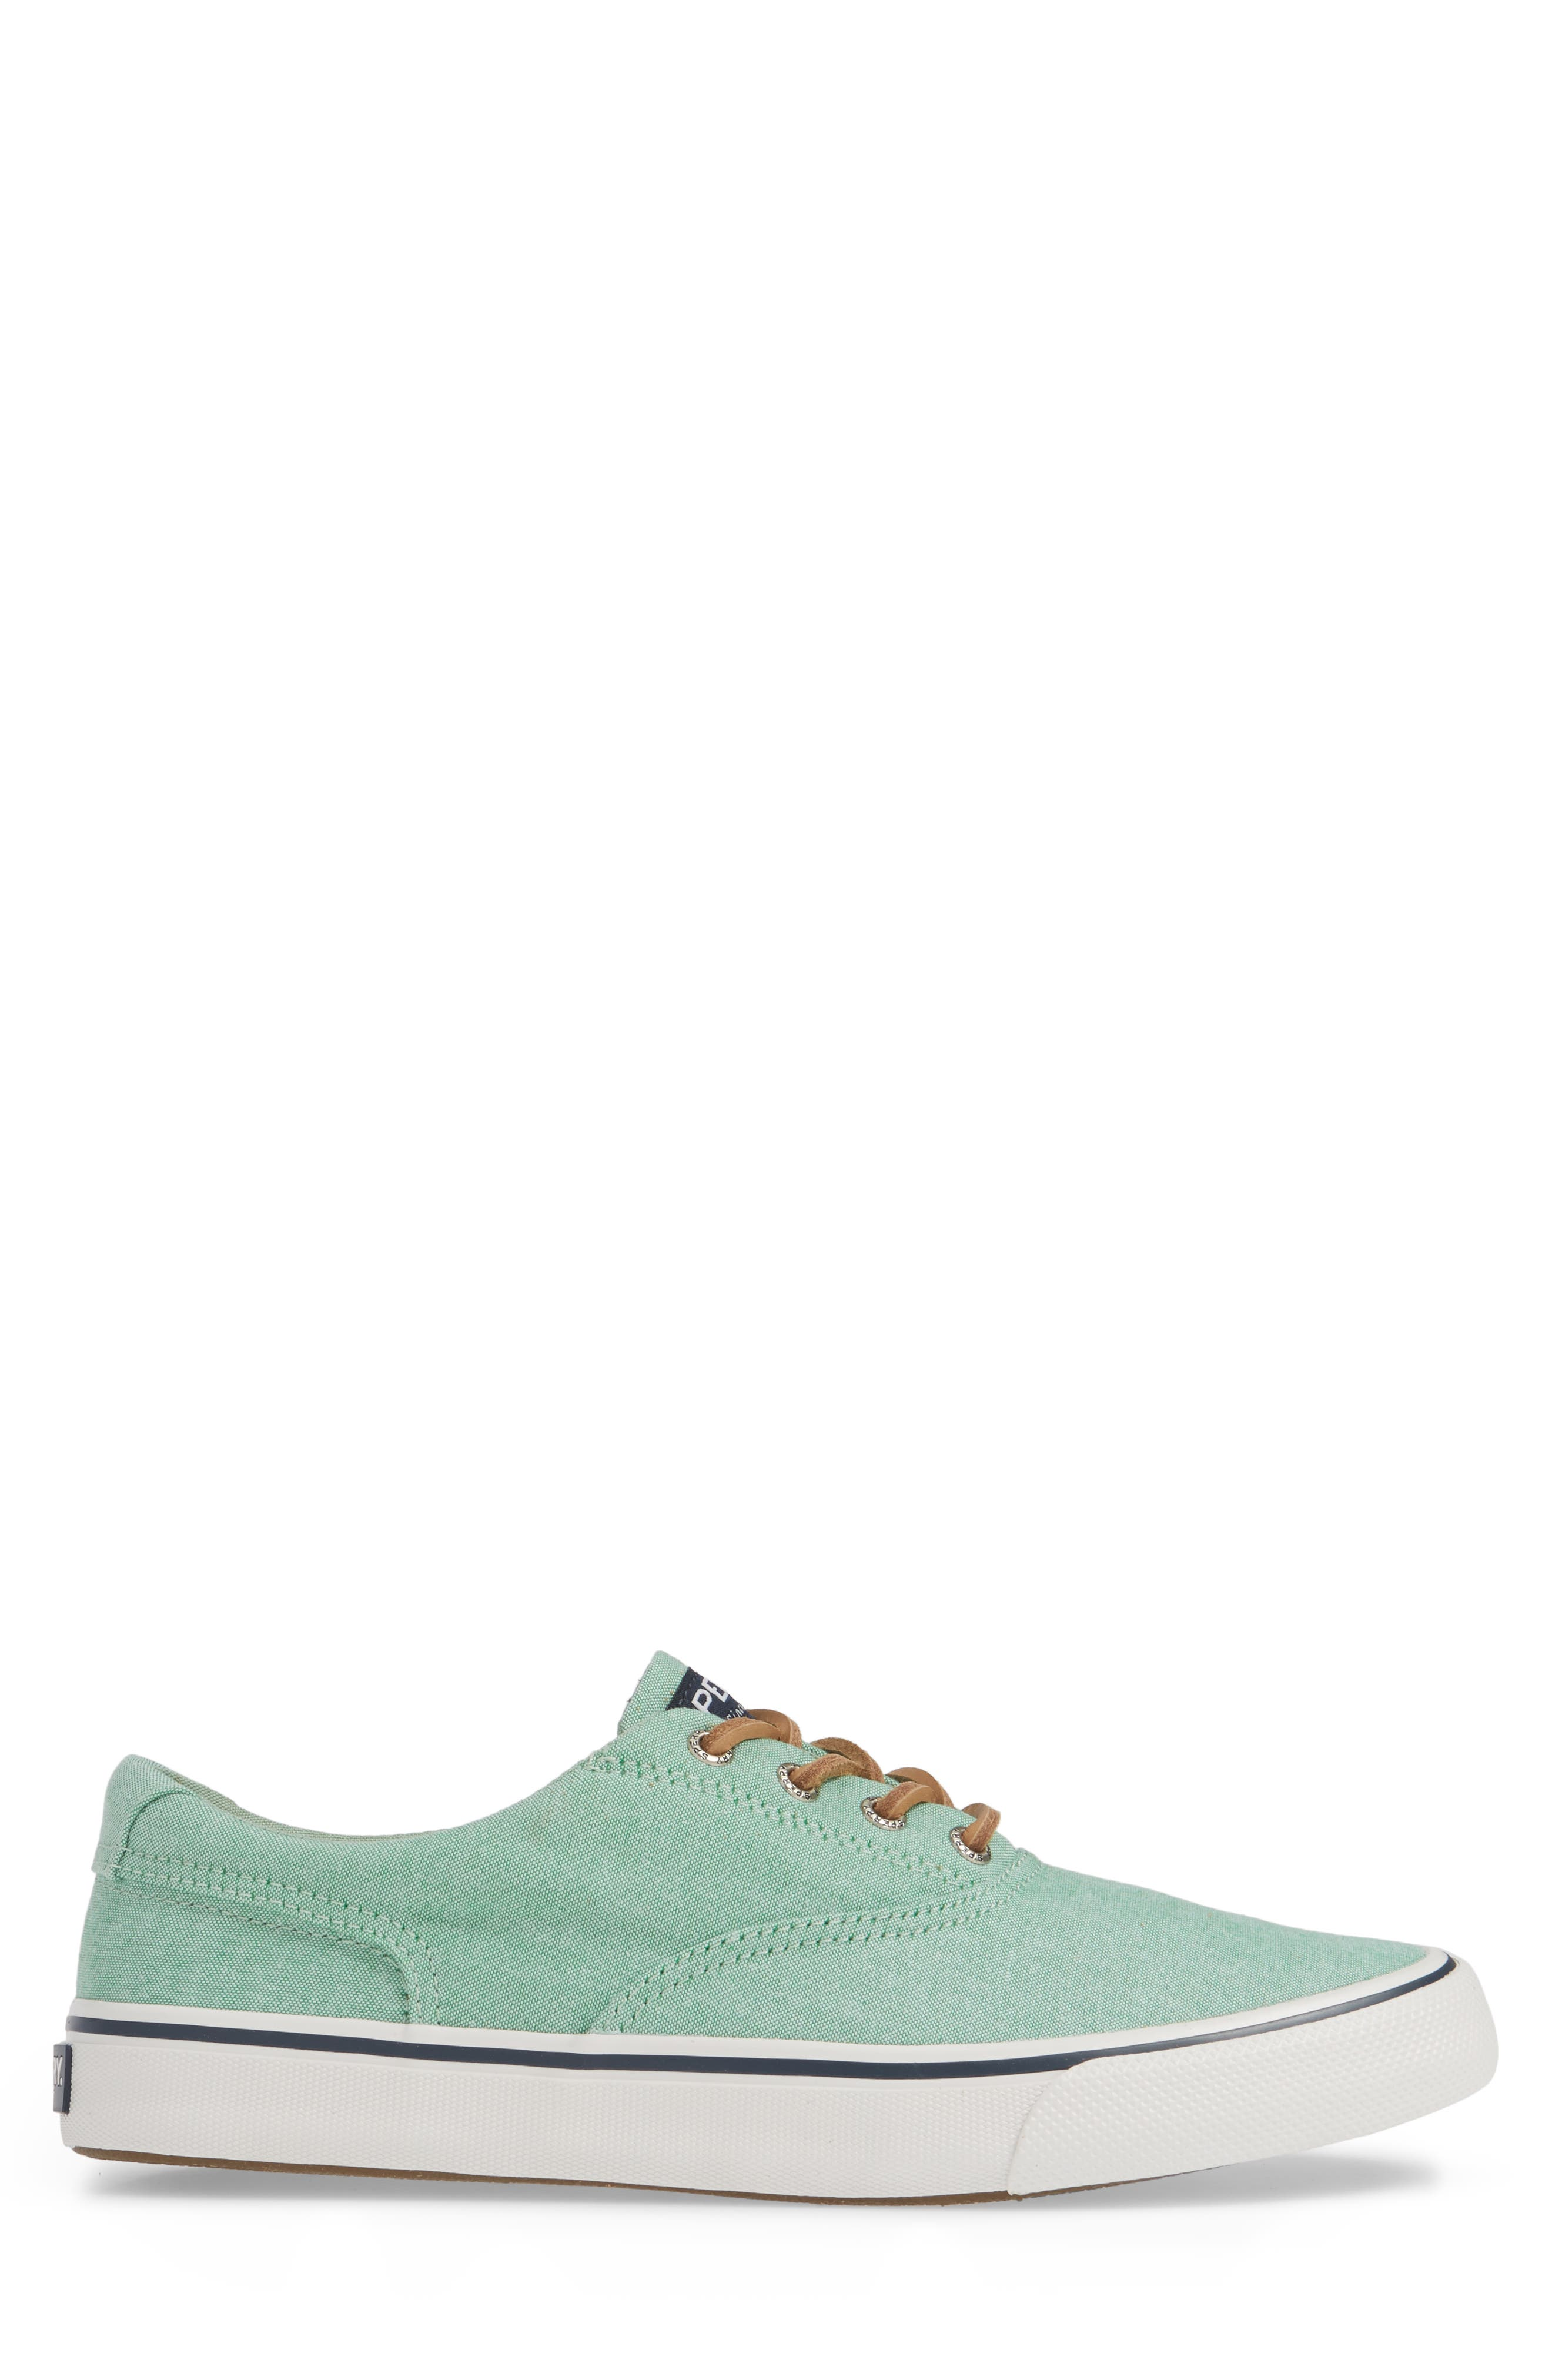 SPERRY, Striper II CVO Oxford Sneaker, Alternate thumbnail 3, color, GREEN